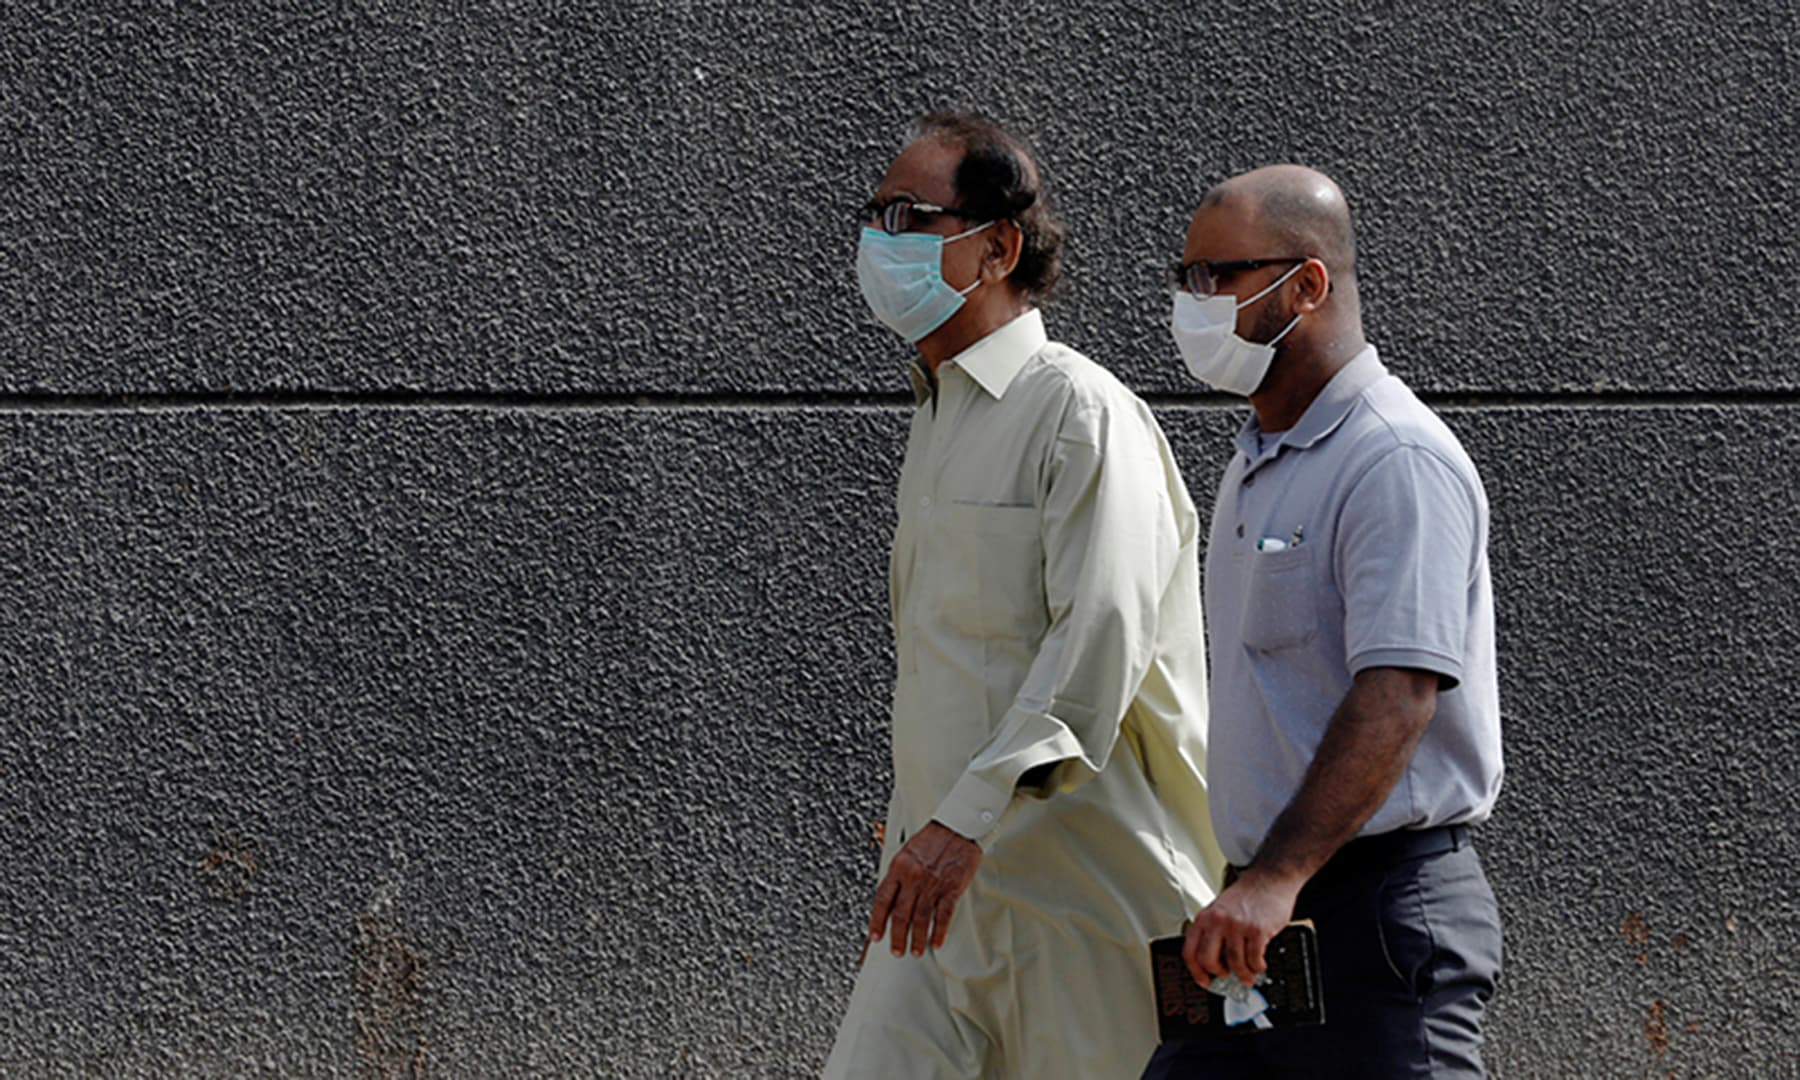 Men walk with face masks as a preventive measure, after Pakistan confirmed its first two cases of coronavirus, in Karachi on Feb 28. — Reuters